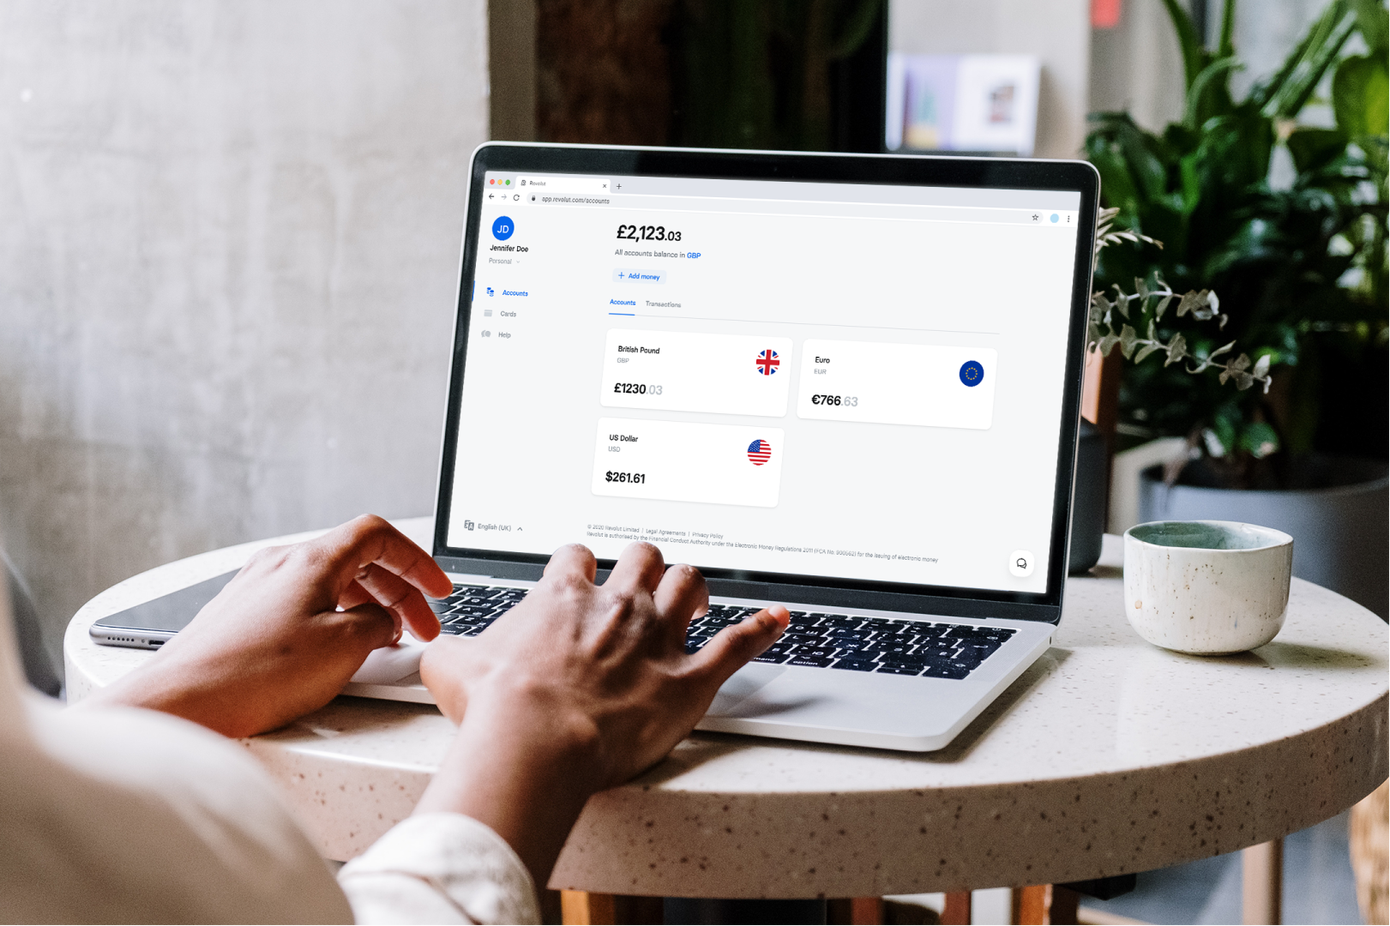 Revolut launches early salary feature in the UK and web app